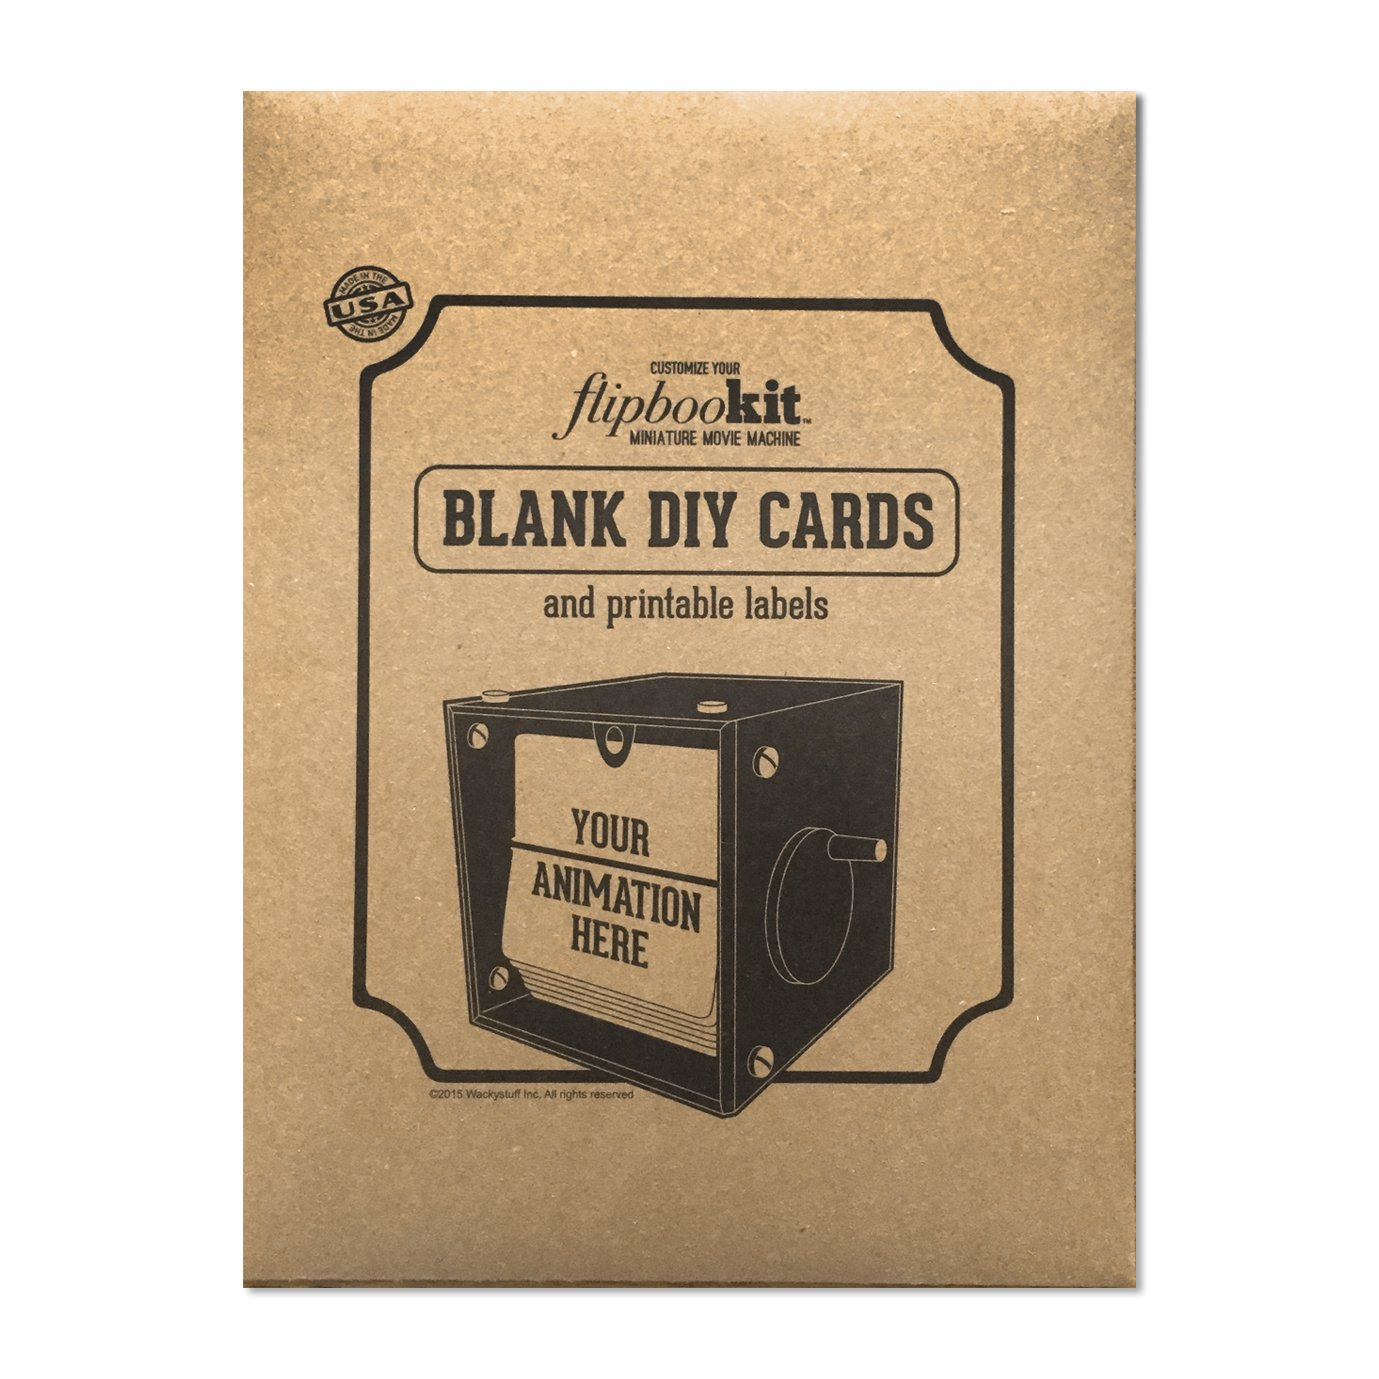 Flipbookit Blank DIY Cards and Printable Labels (1 pack)